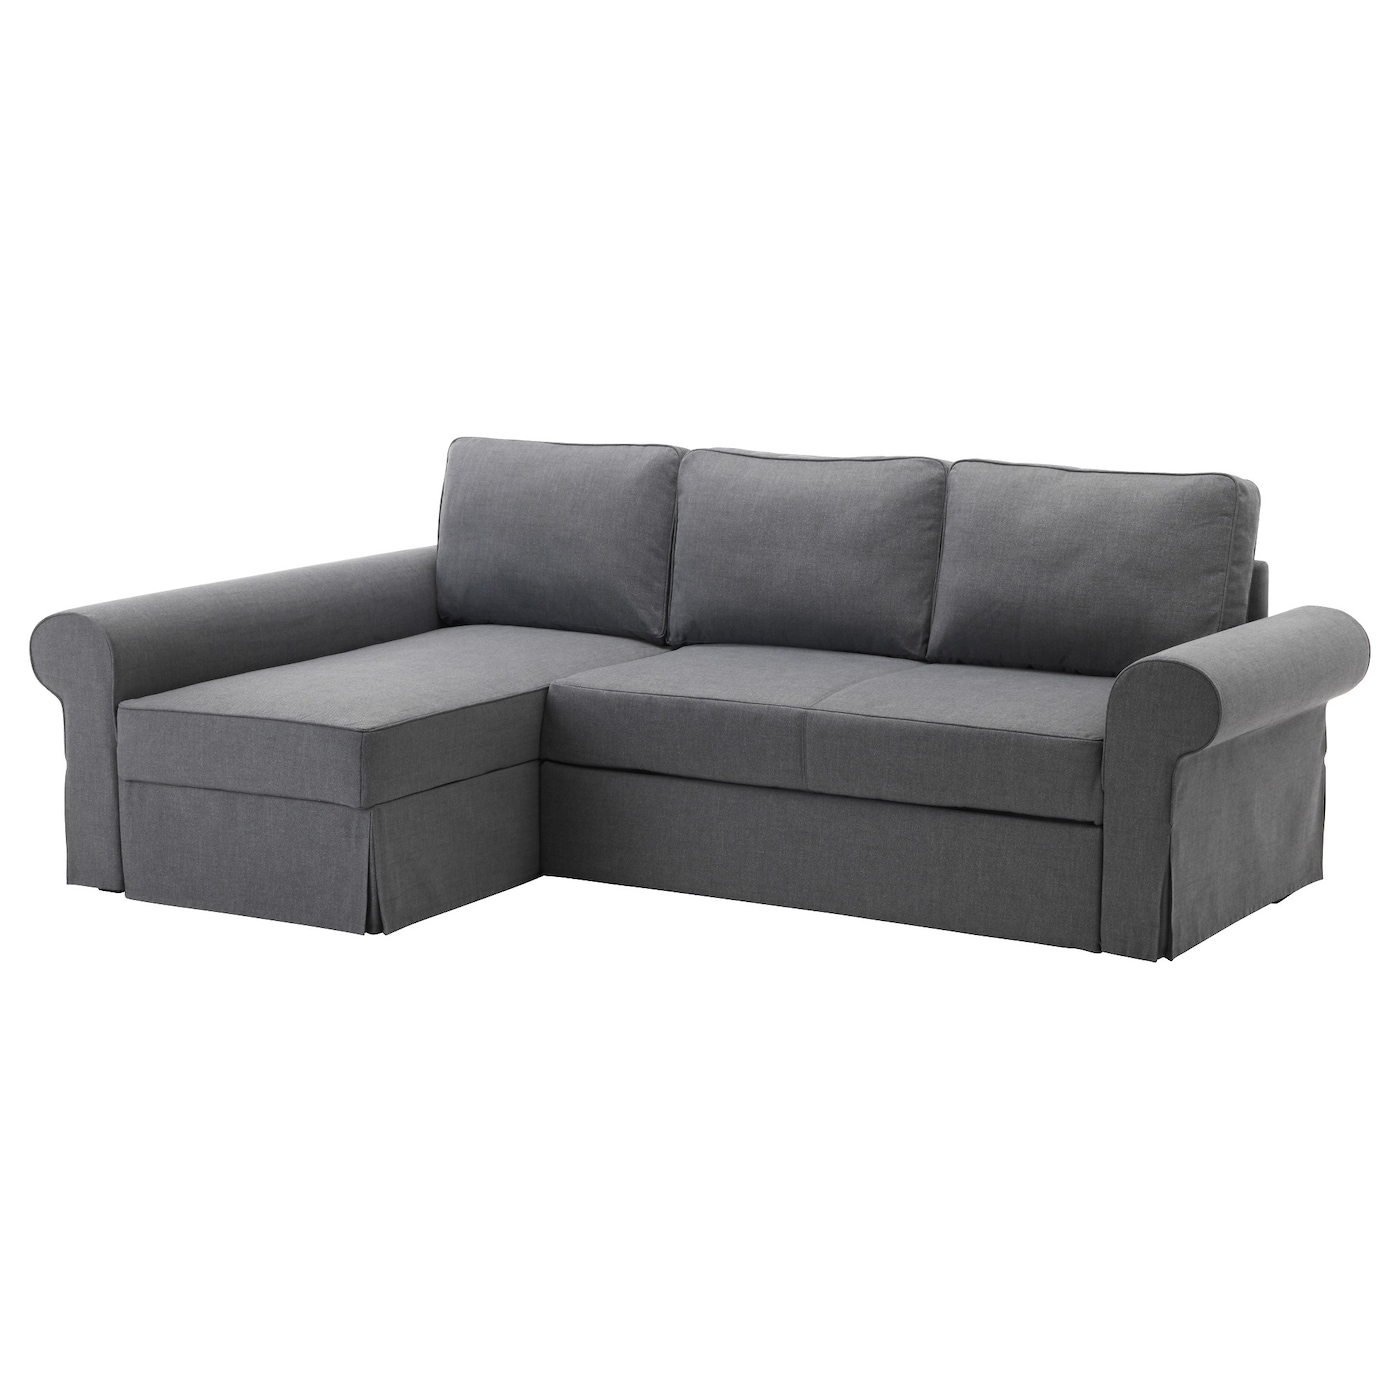 Backabro sofa bed with chaise longue nordvalla dark grey for Chaise longue sofa cama